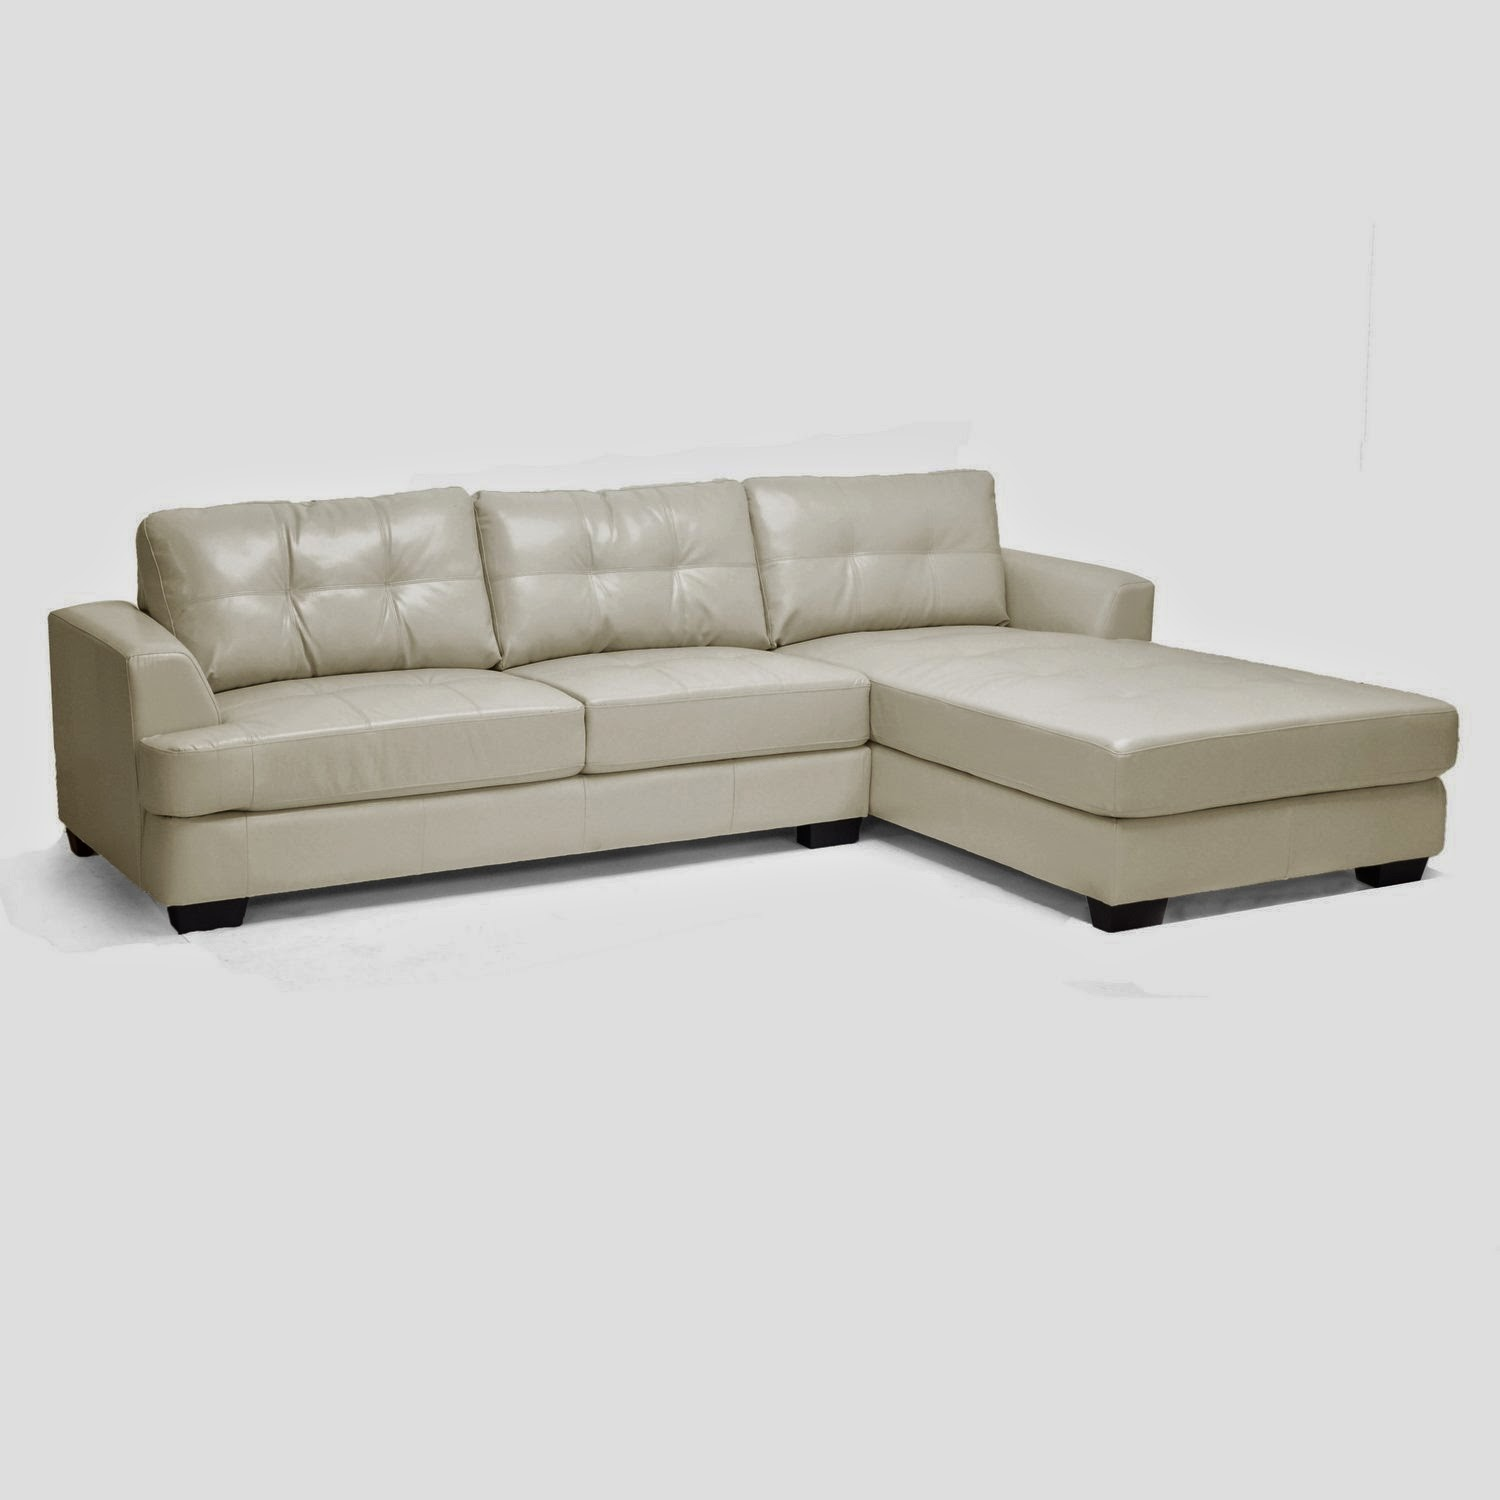 Sectional sofa Sleeper sofa sectional